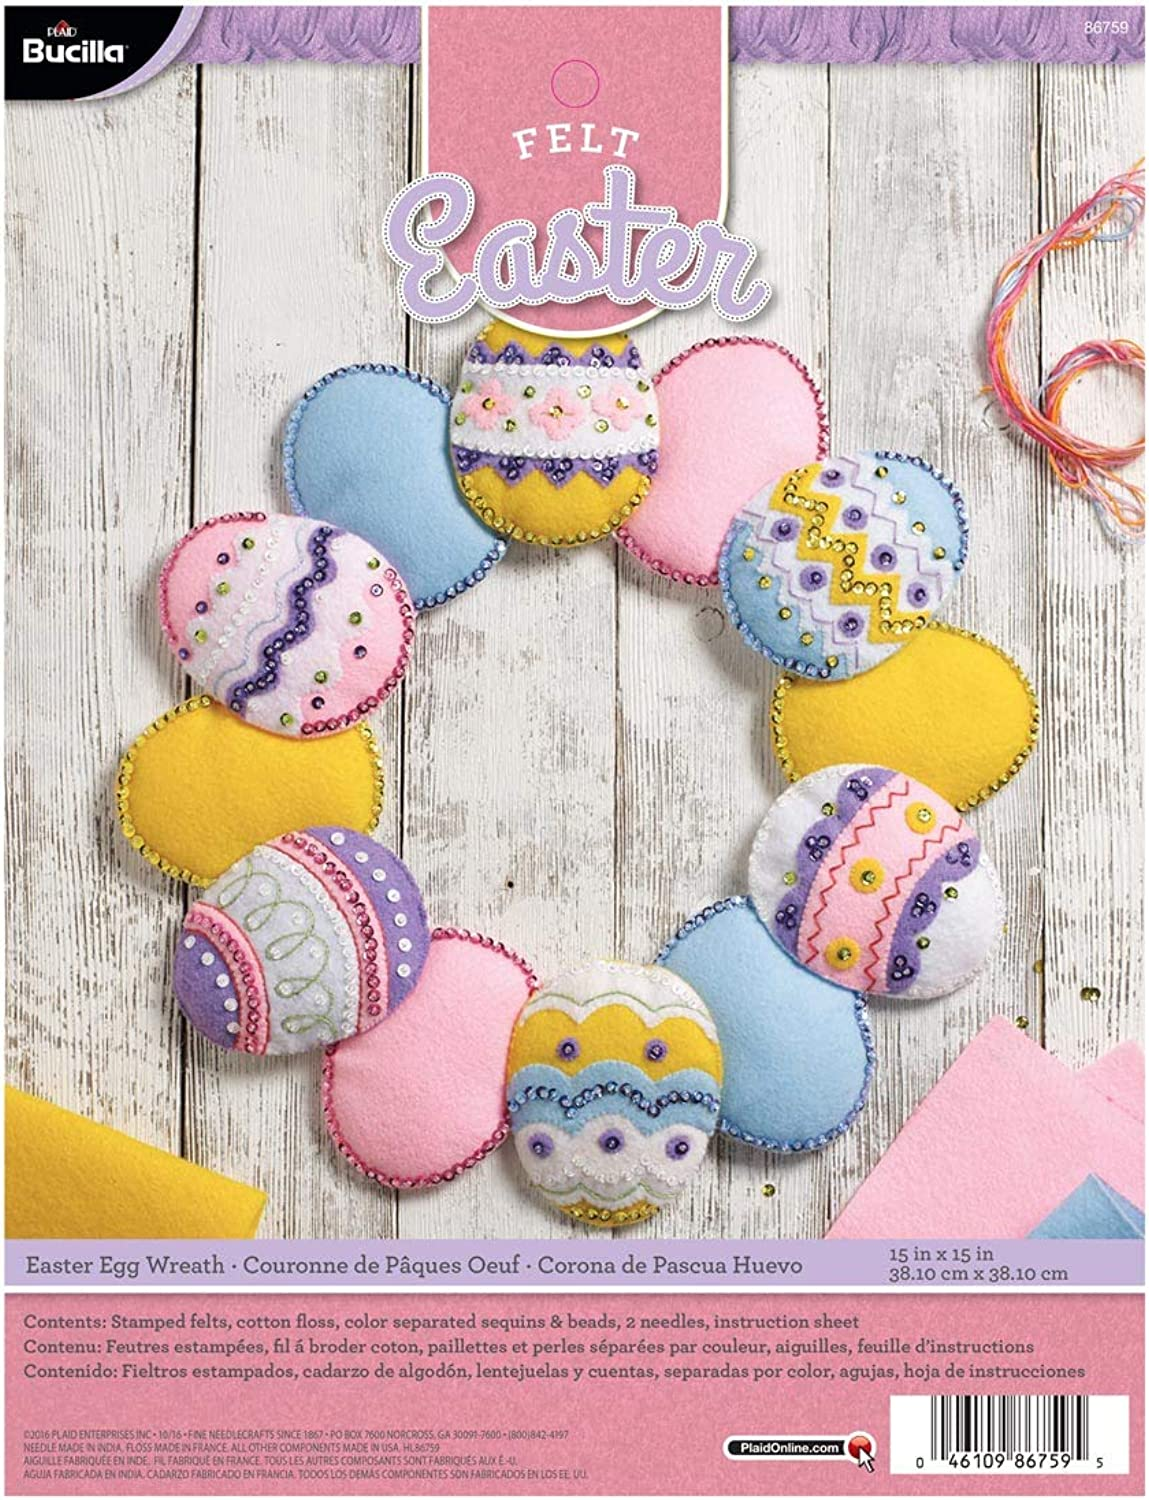 Bucilla Felt Applique Wreath Kit, 86759, Pink, Yellow, White, bluee, Purple, 15x15